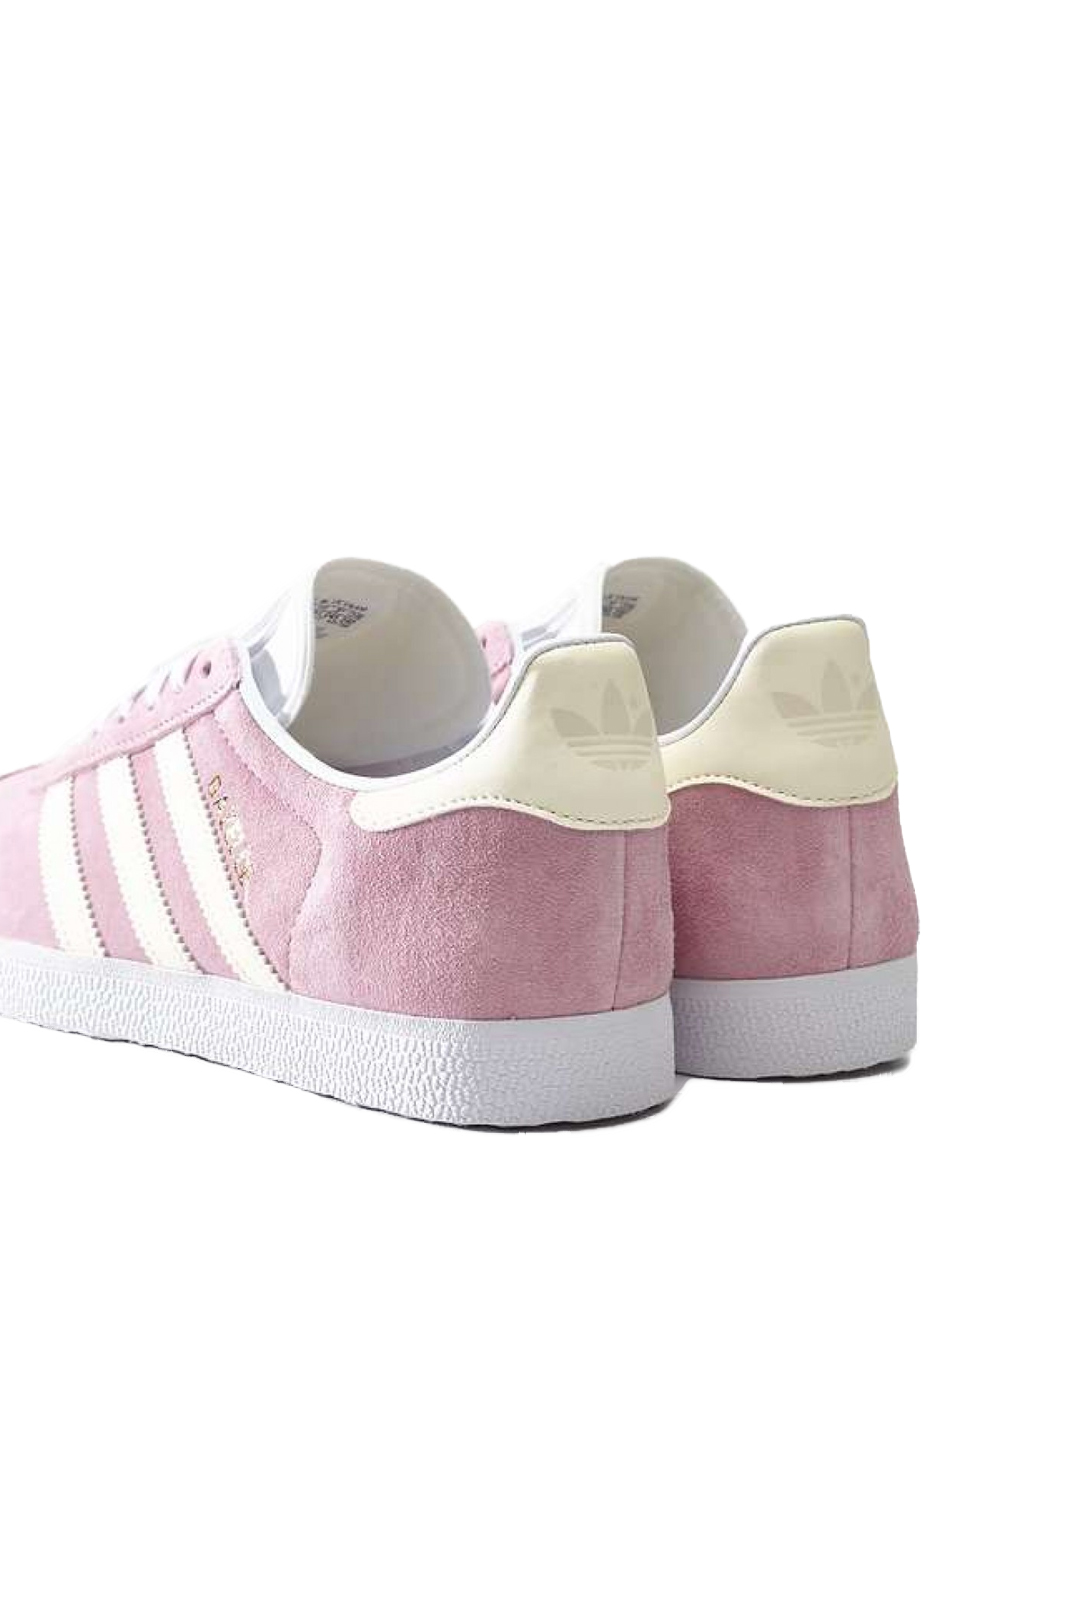 Baskets / Sneakers  Adidas F34327 GAZELLE W ROSE